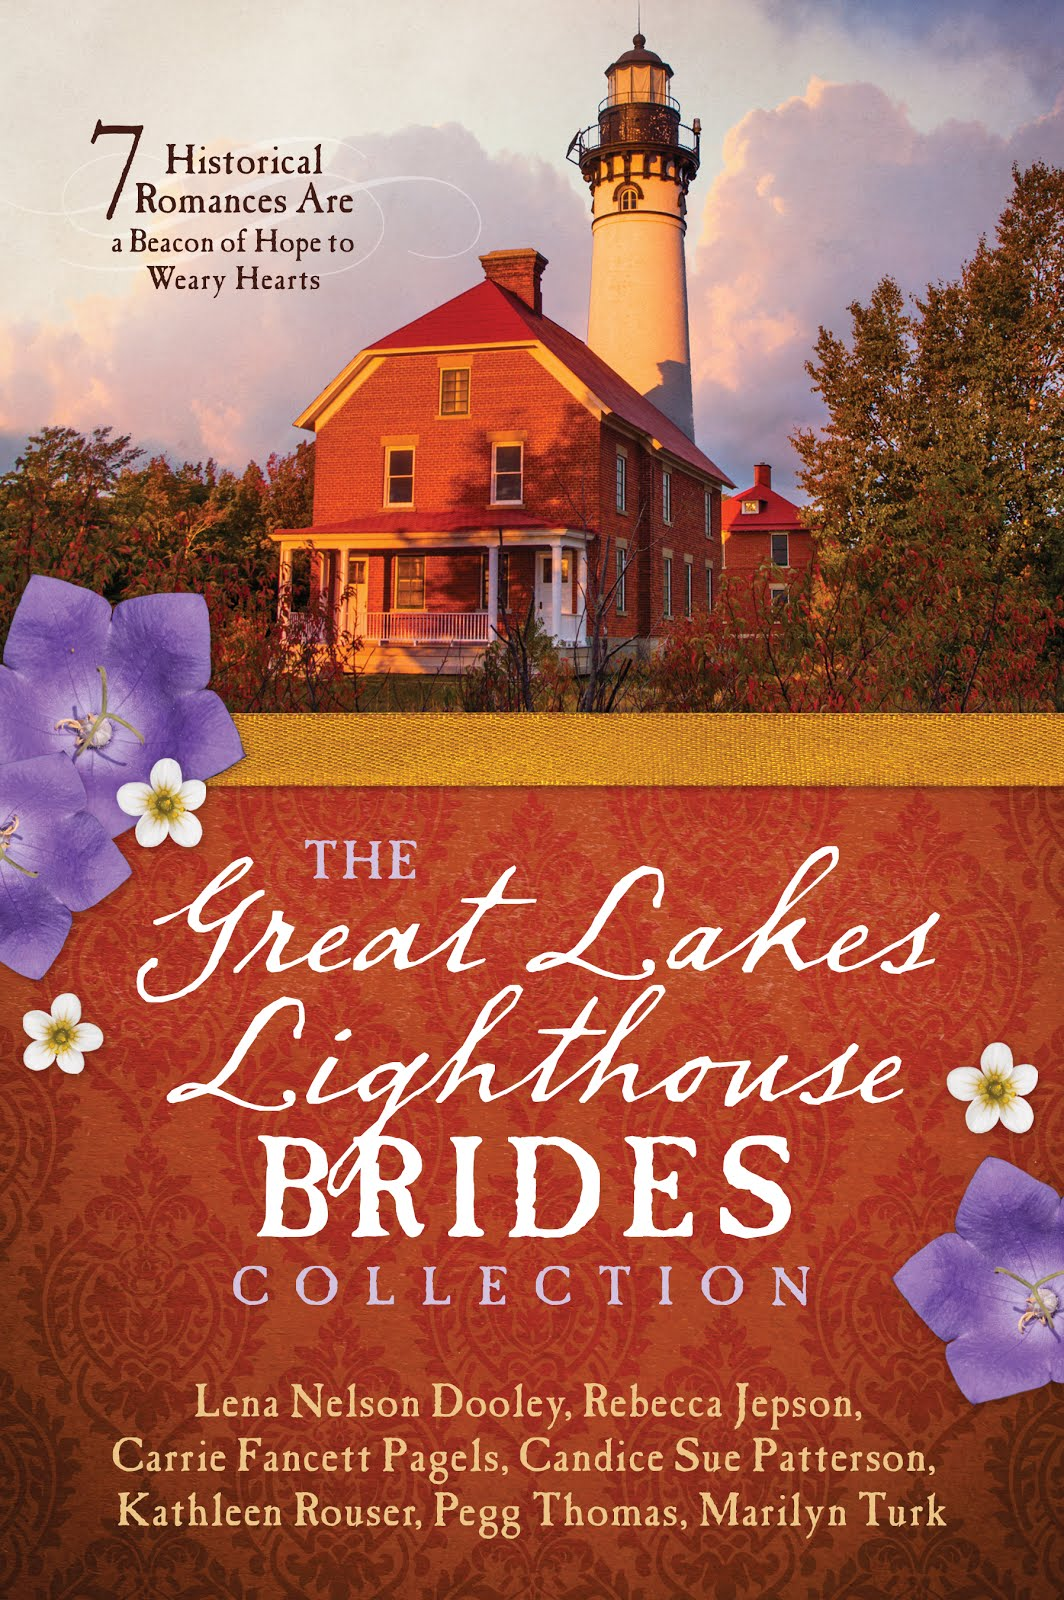 Great Lakes Lighthouse Brides Collection